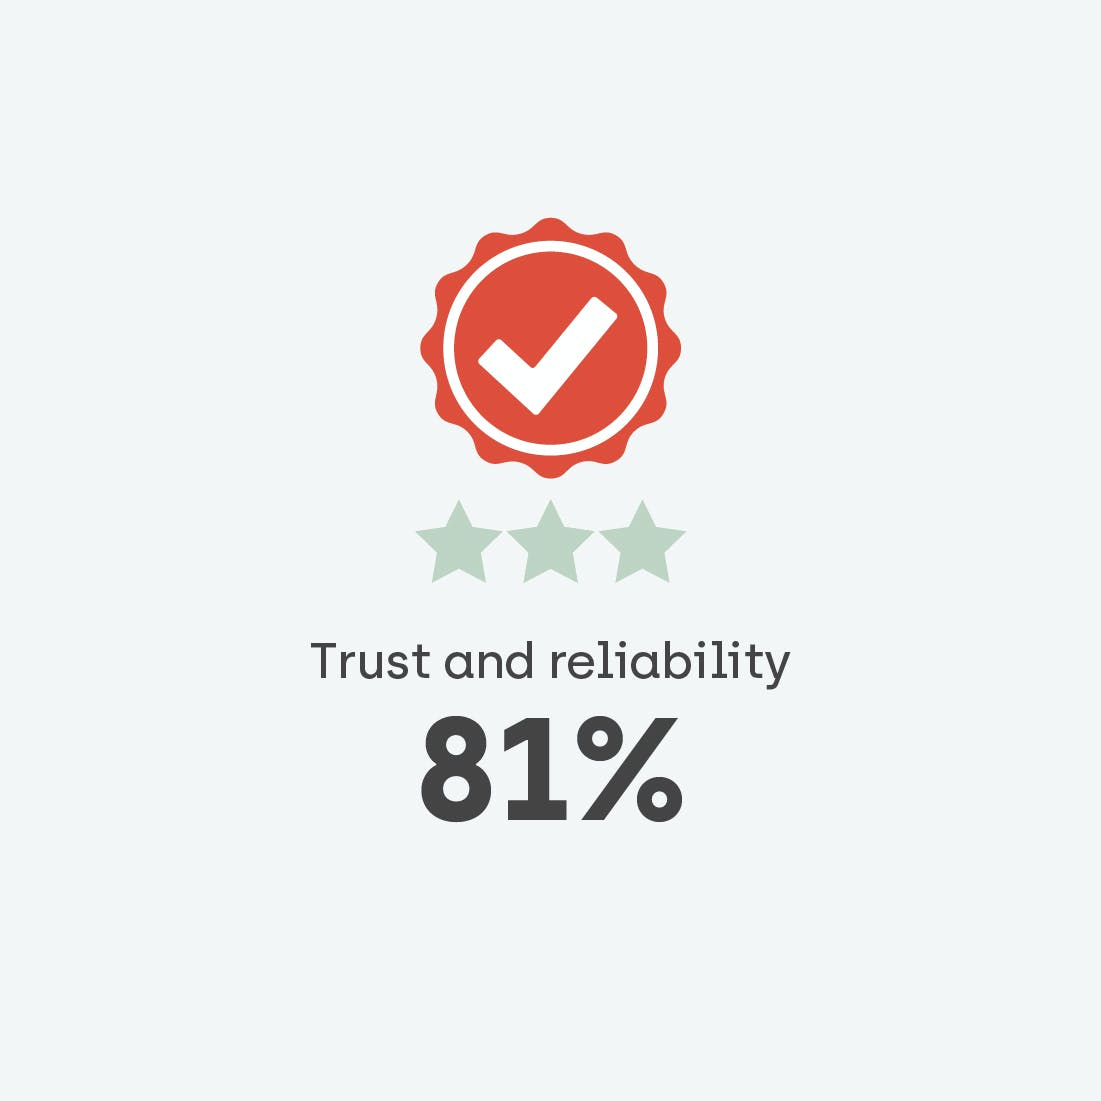 When it comes to the quality of used cars, a very high proportion of Brits (81%) find them trustworthy and reliable, with only 19% finding them unreliable.